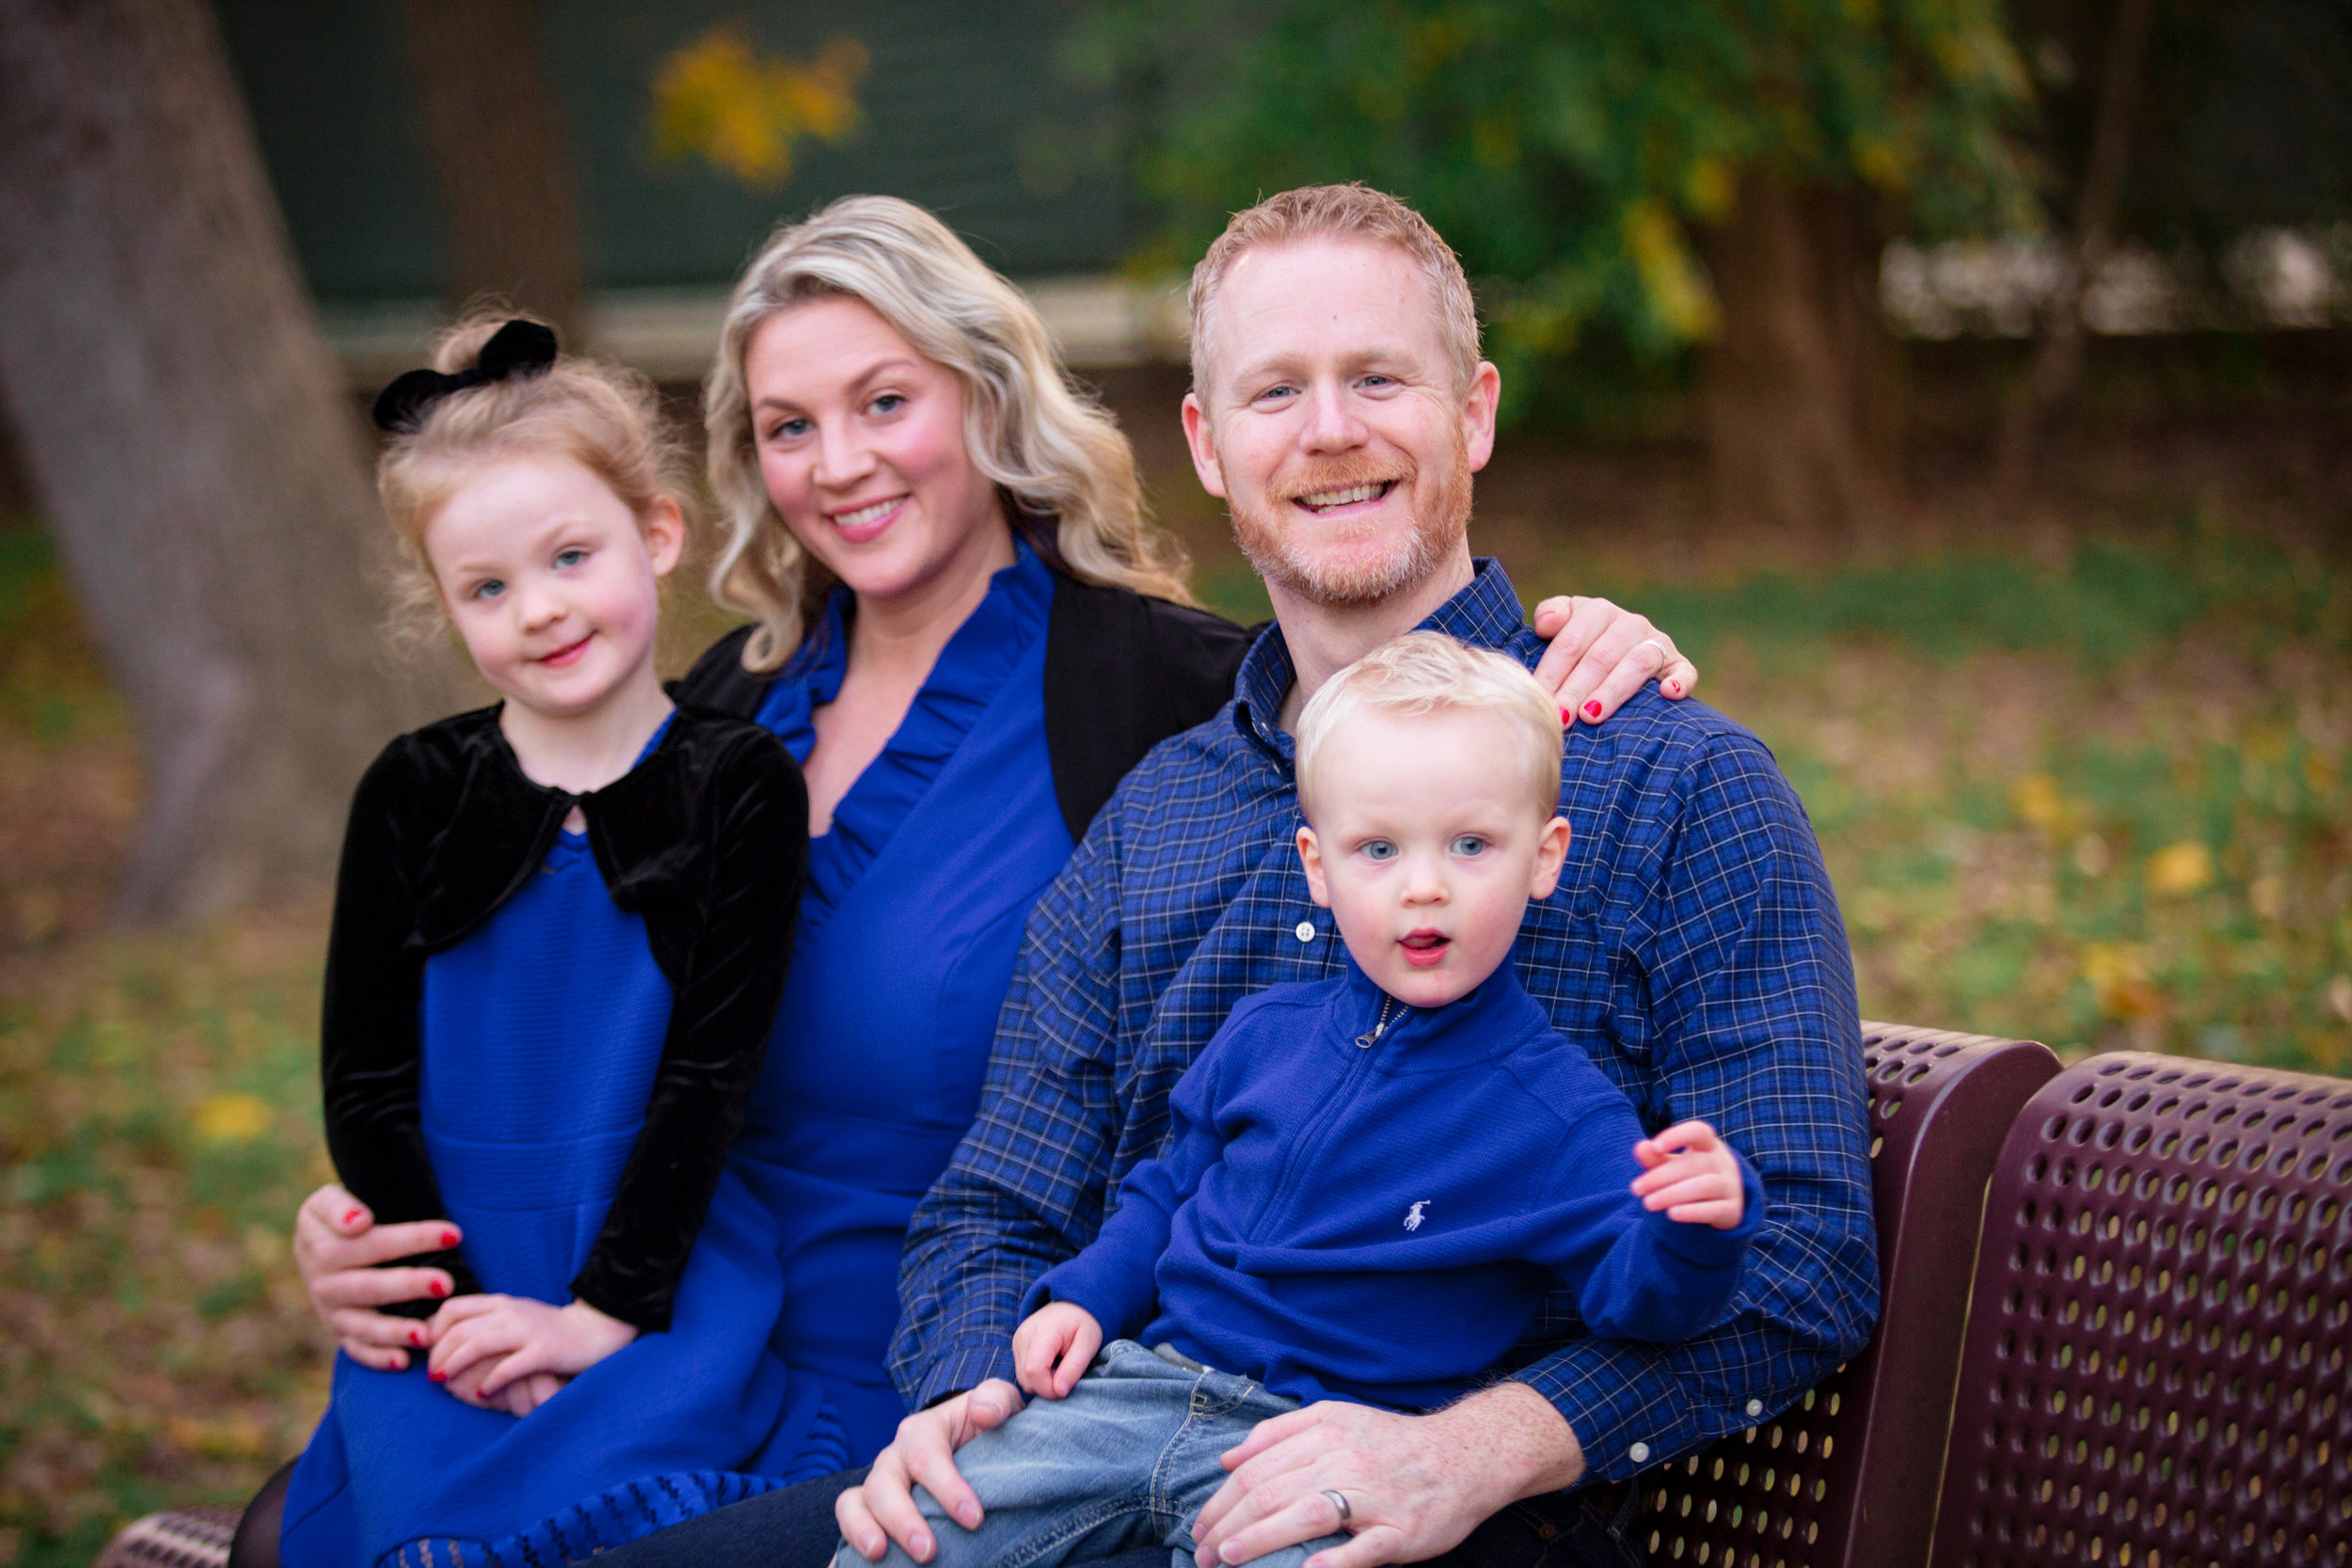 18_11_04 The Brown Family Session167.jpg